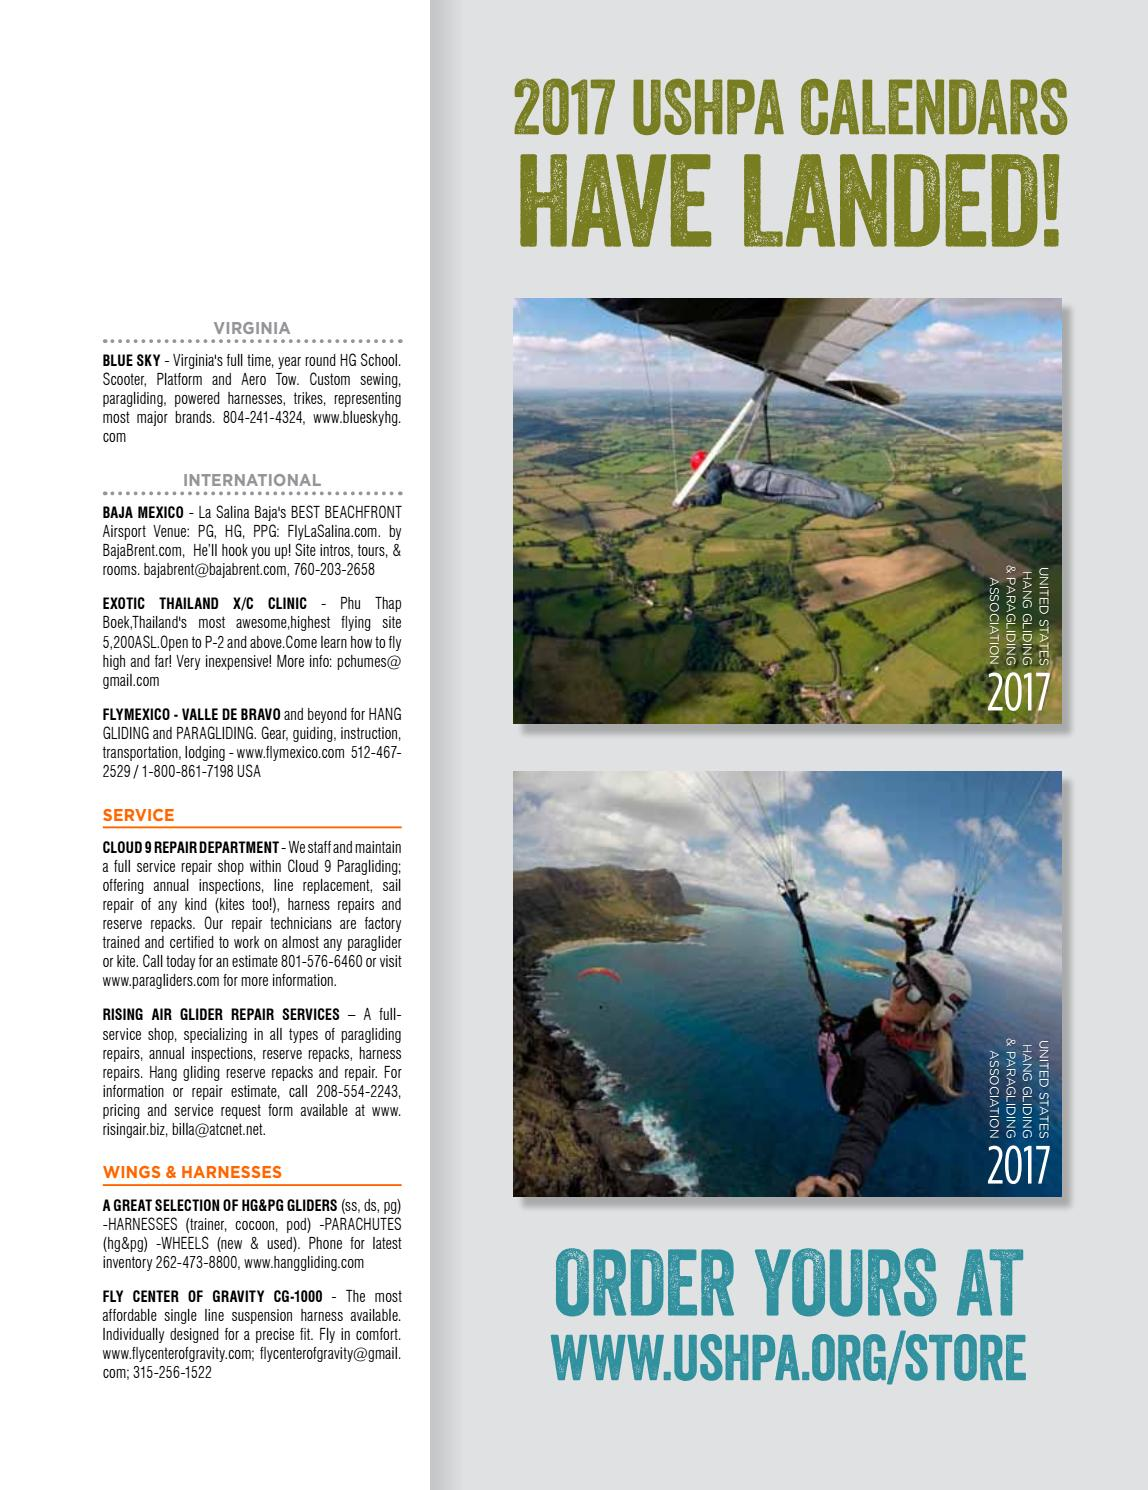 Hang Gliding Paragliding Vol46 Iss5 Sep Oct 2016 By Us Scooter Tow Harness Association Issuu